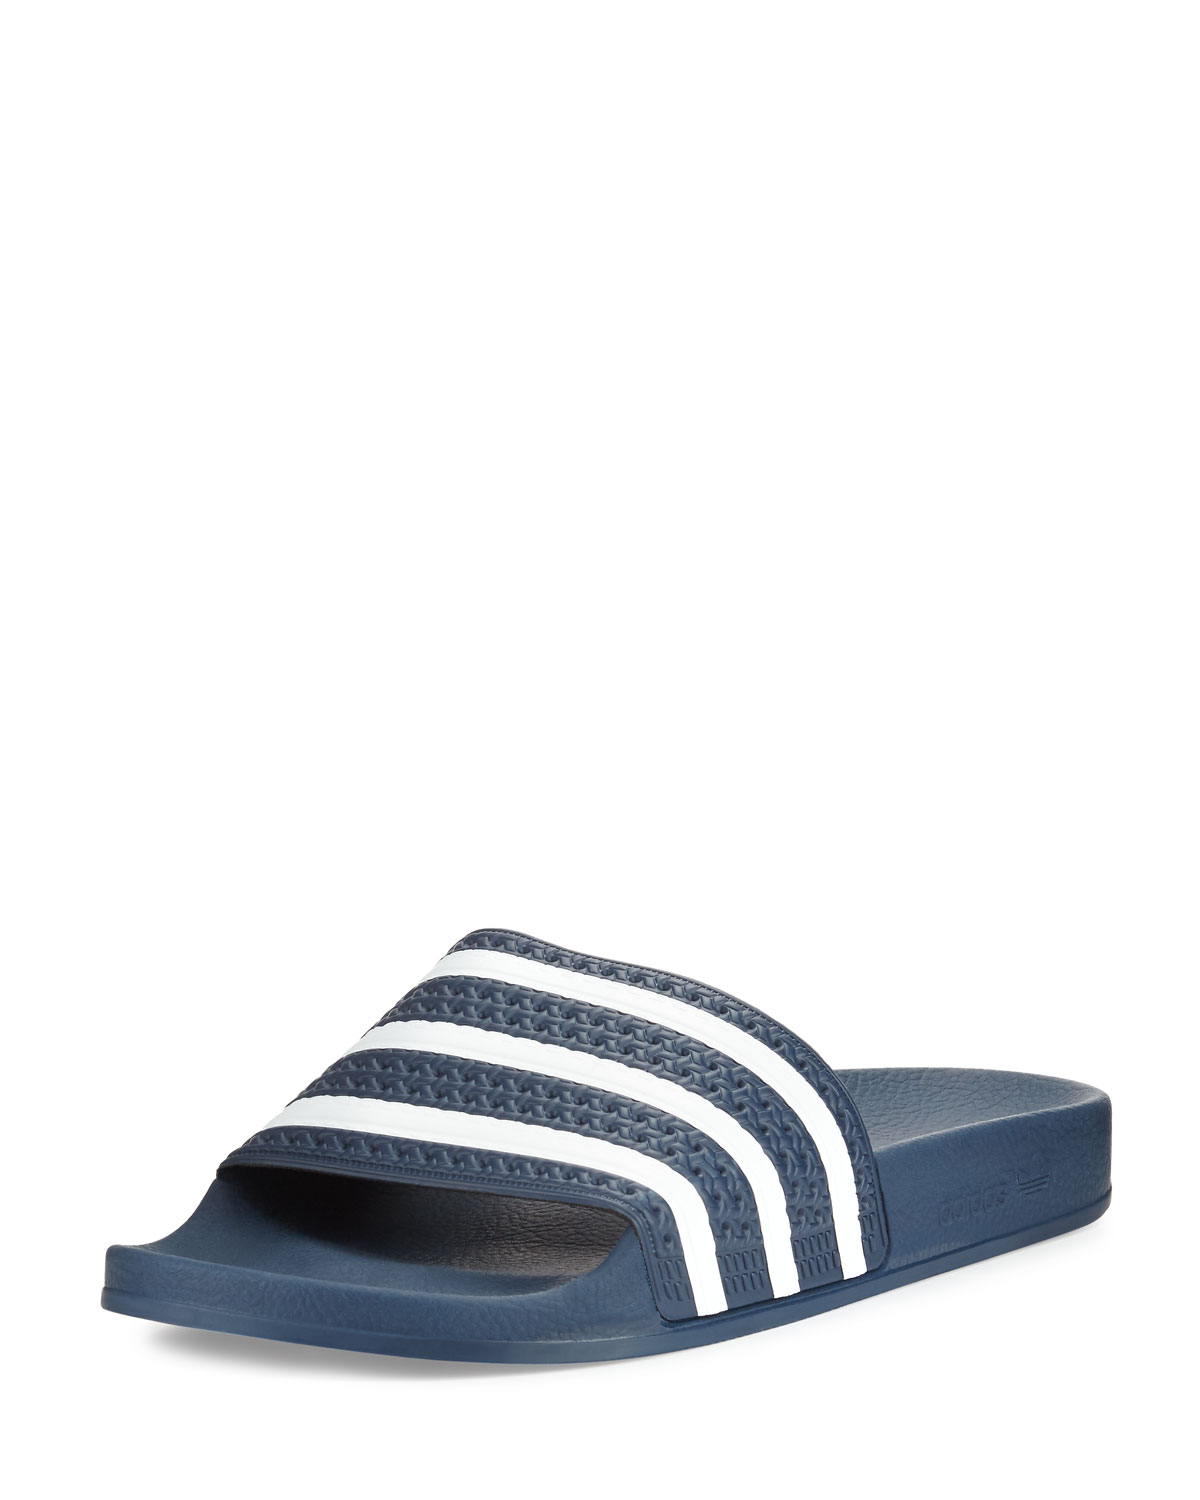 80f49bad3 Adidas Men s Adilette 3 Rubber Slide